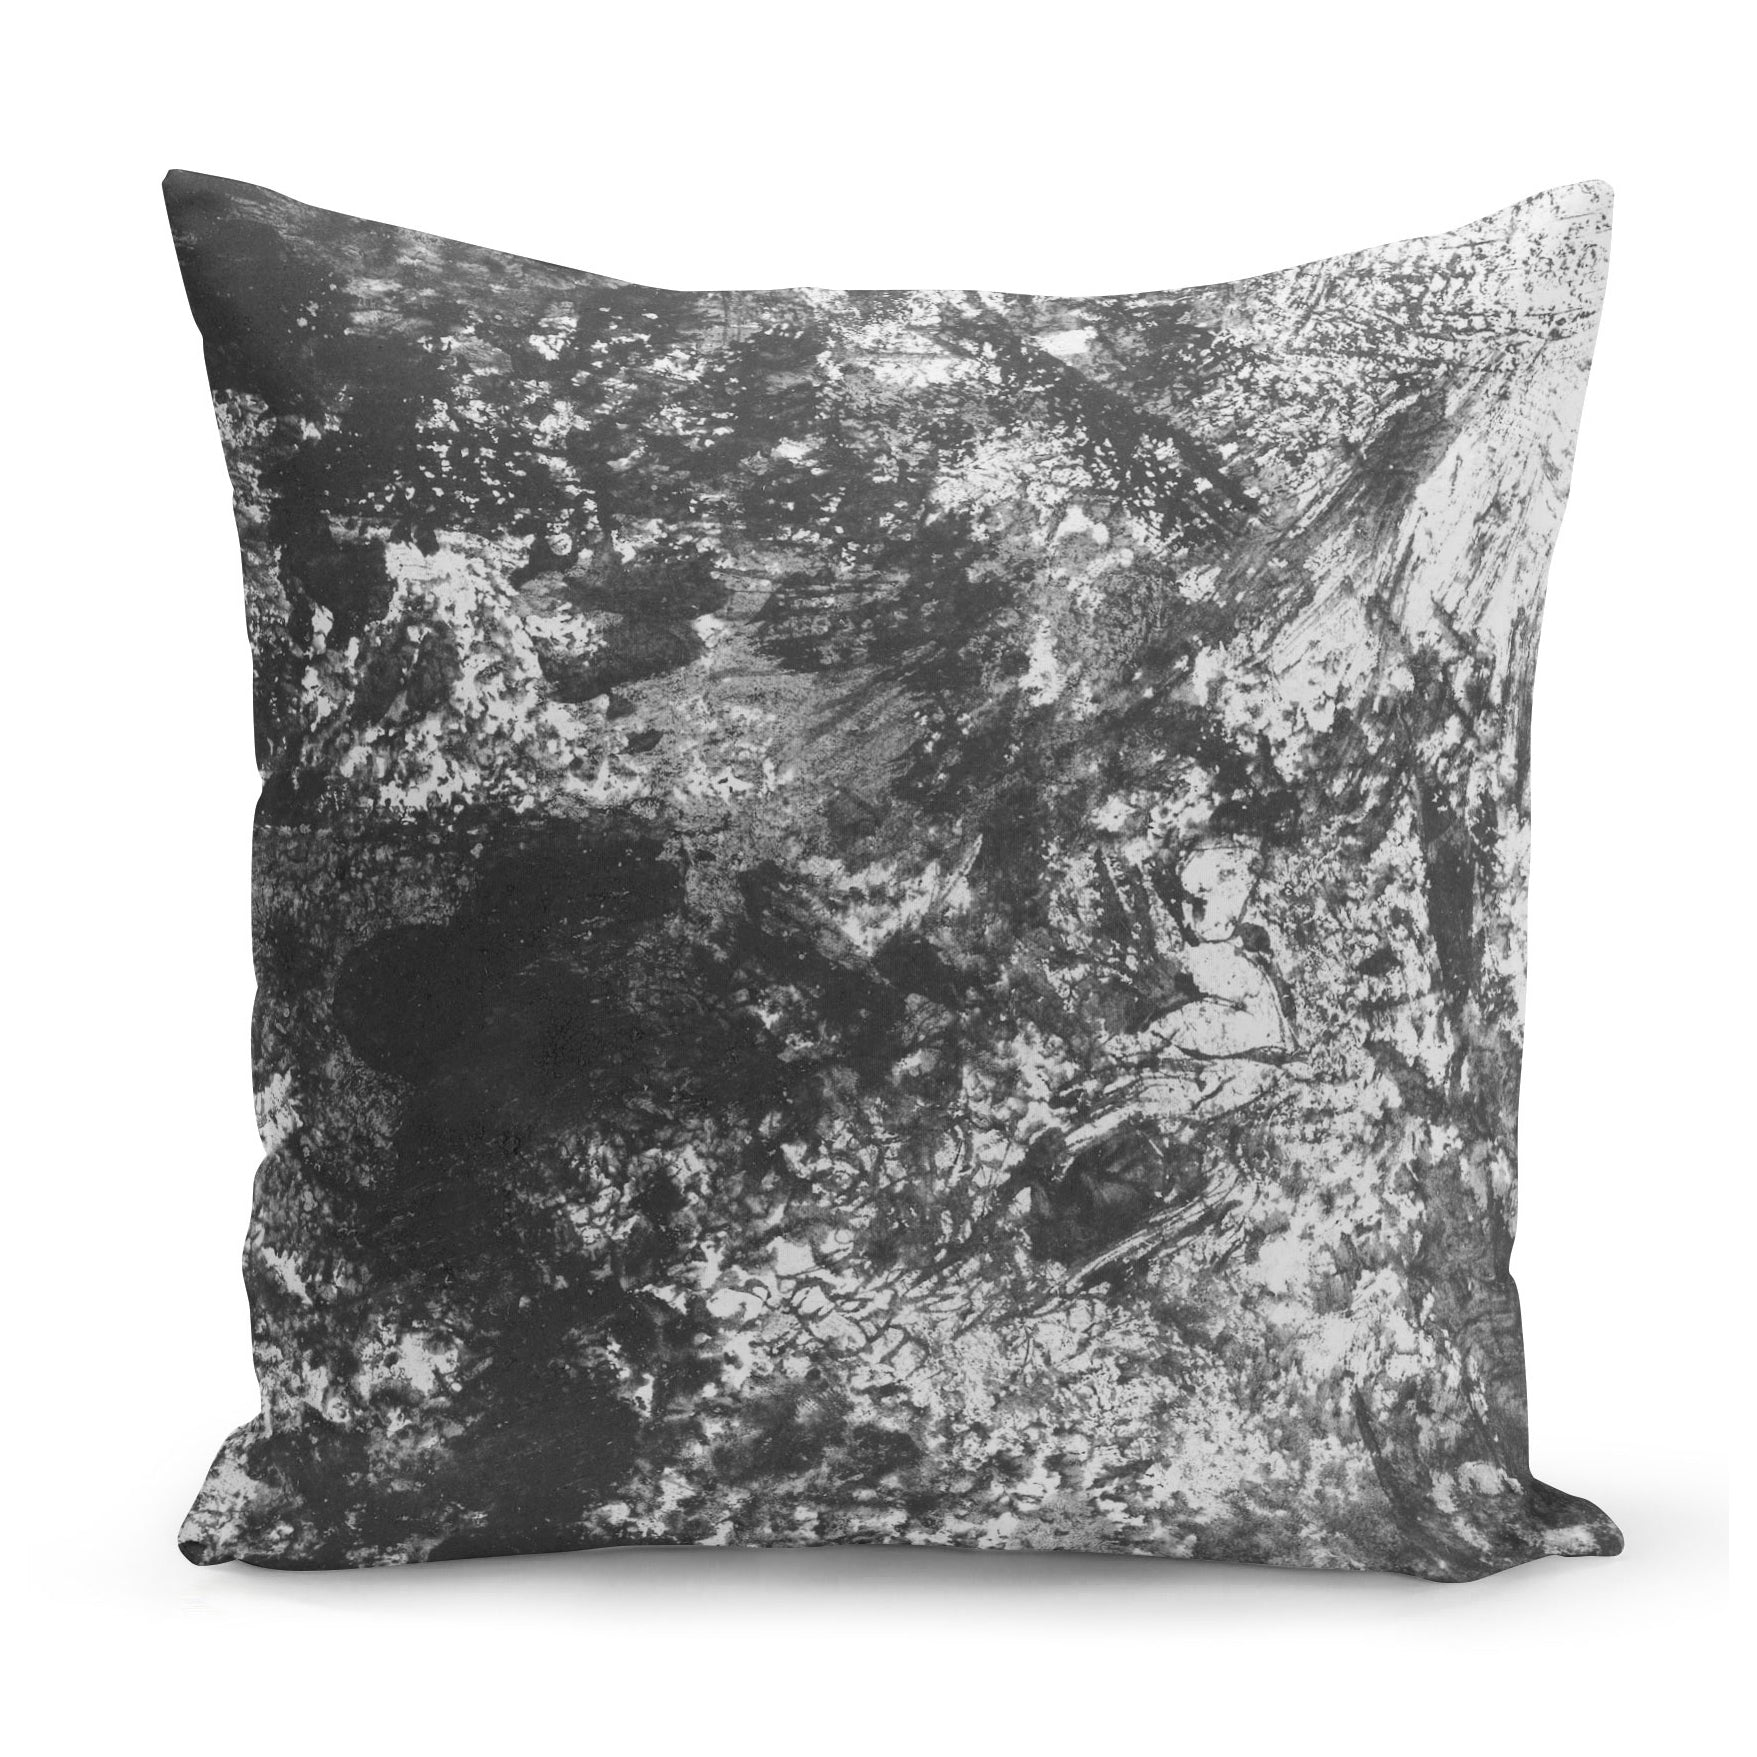 grey cushion with smudgy pencil effect design